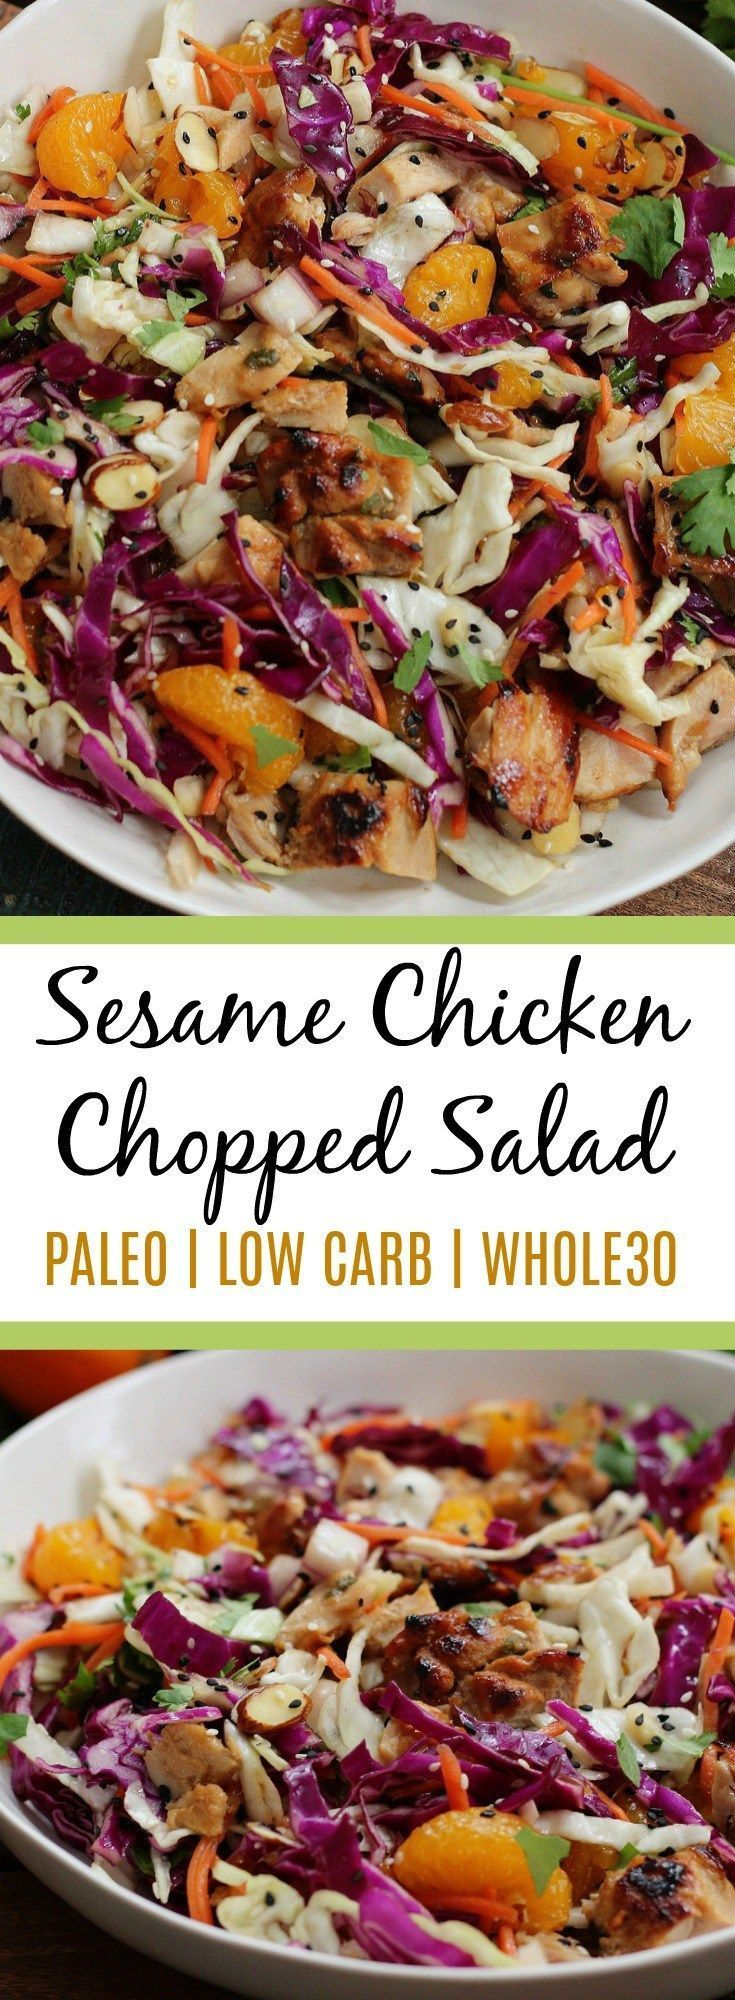 Healthy Sesame Chicken Chopped Salad: Paleo & Whole30 #whole30recipes